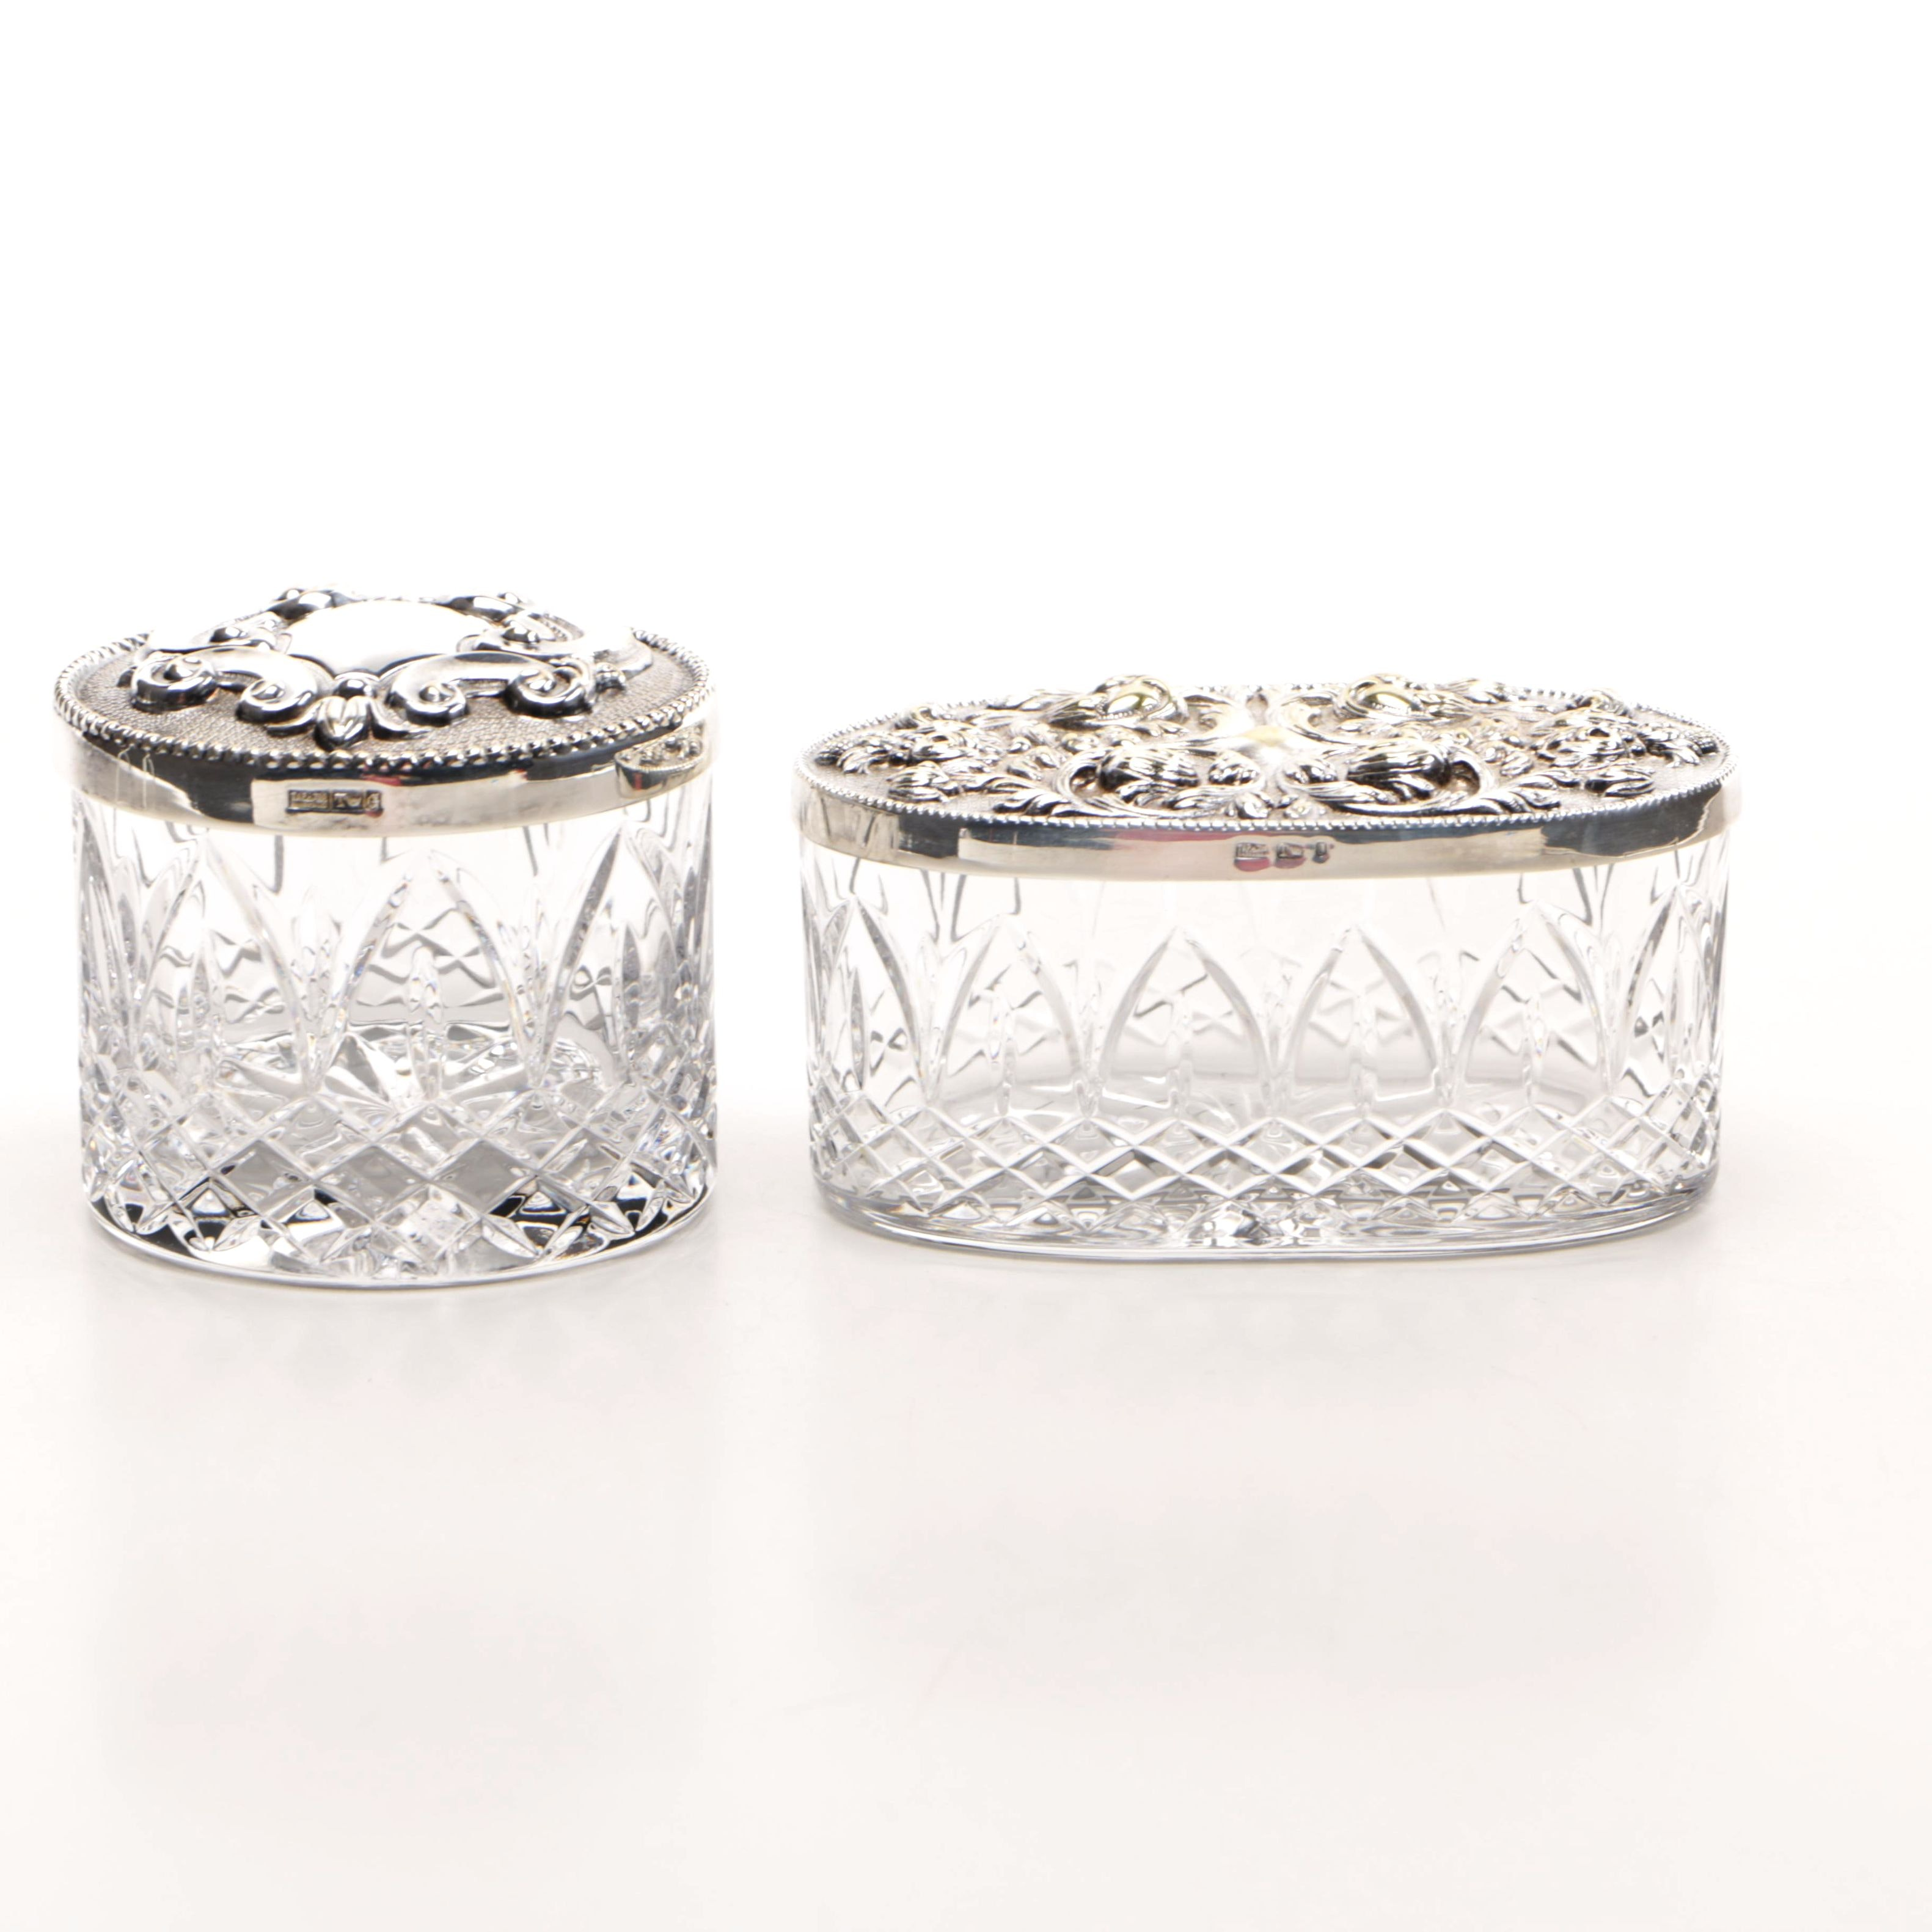 Atlantis Crystal Containers with Plated Silver Lids